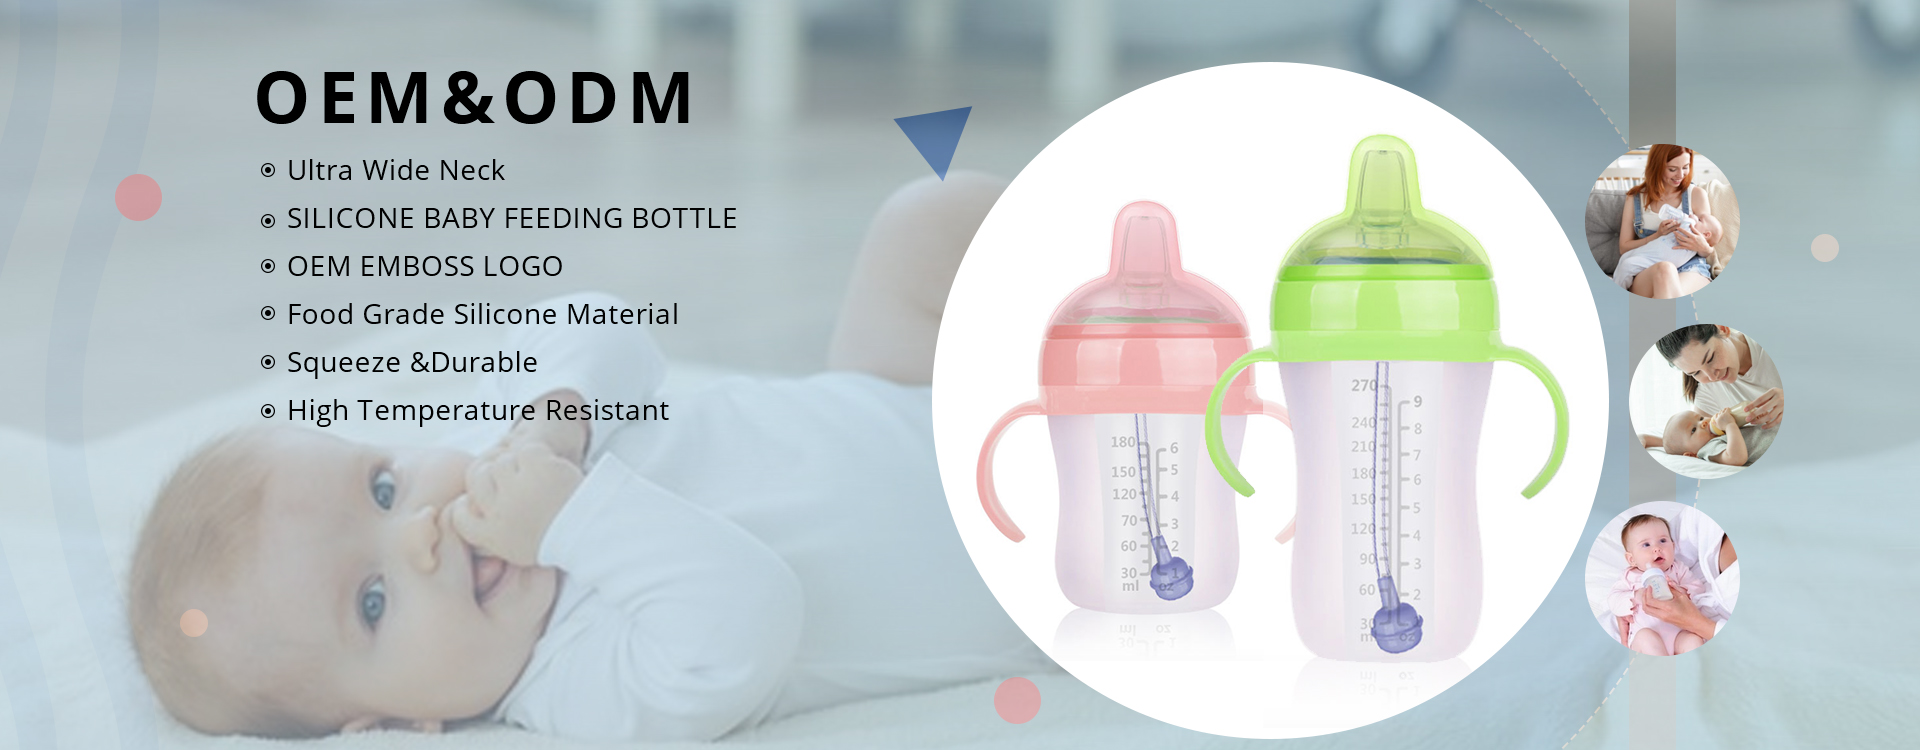 2in1 Soft Silicone Baby Feeding Bottle